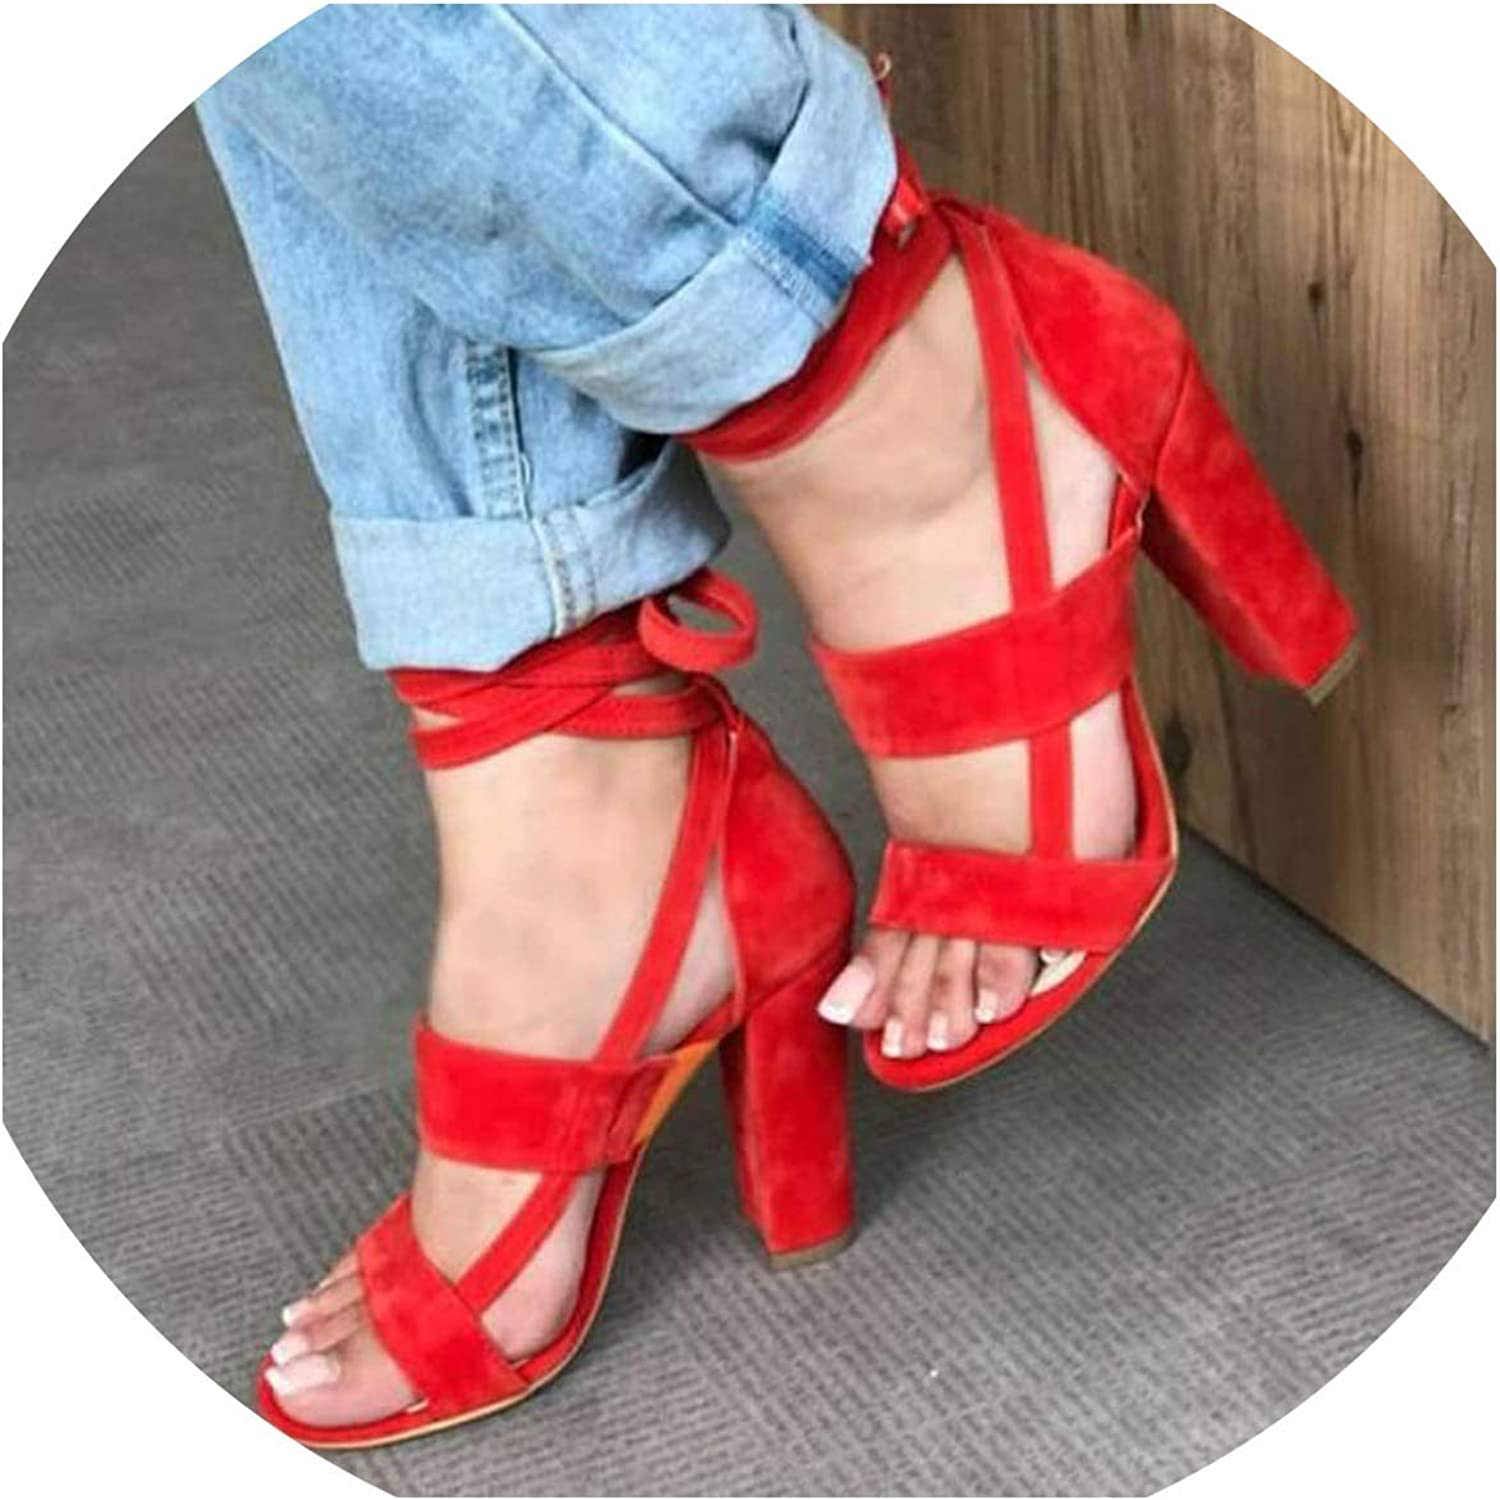 Monica's house Plus Size Female Ankle Strap High Heels shoes Thick Heel for Women Party Wedding,Red-D2312,10